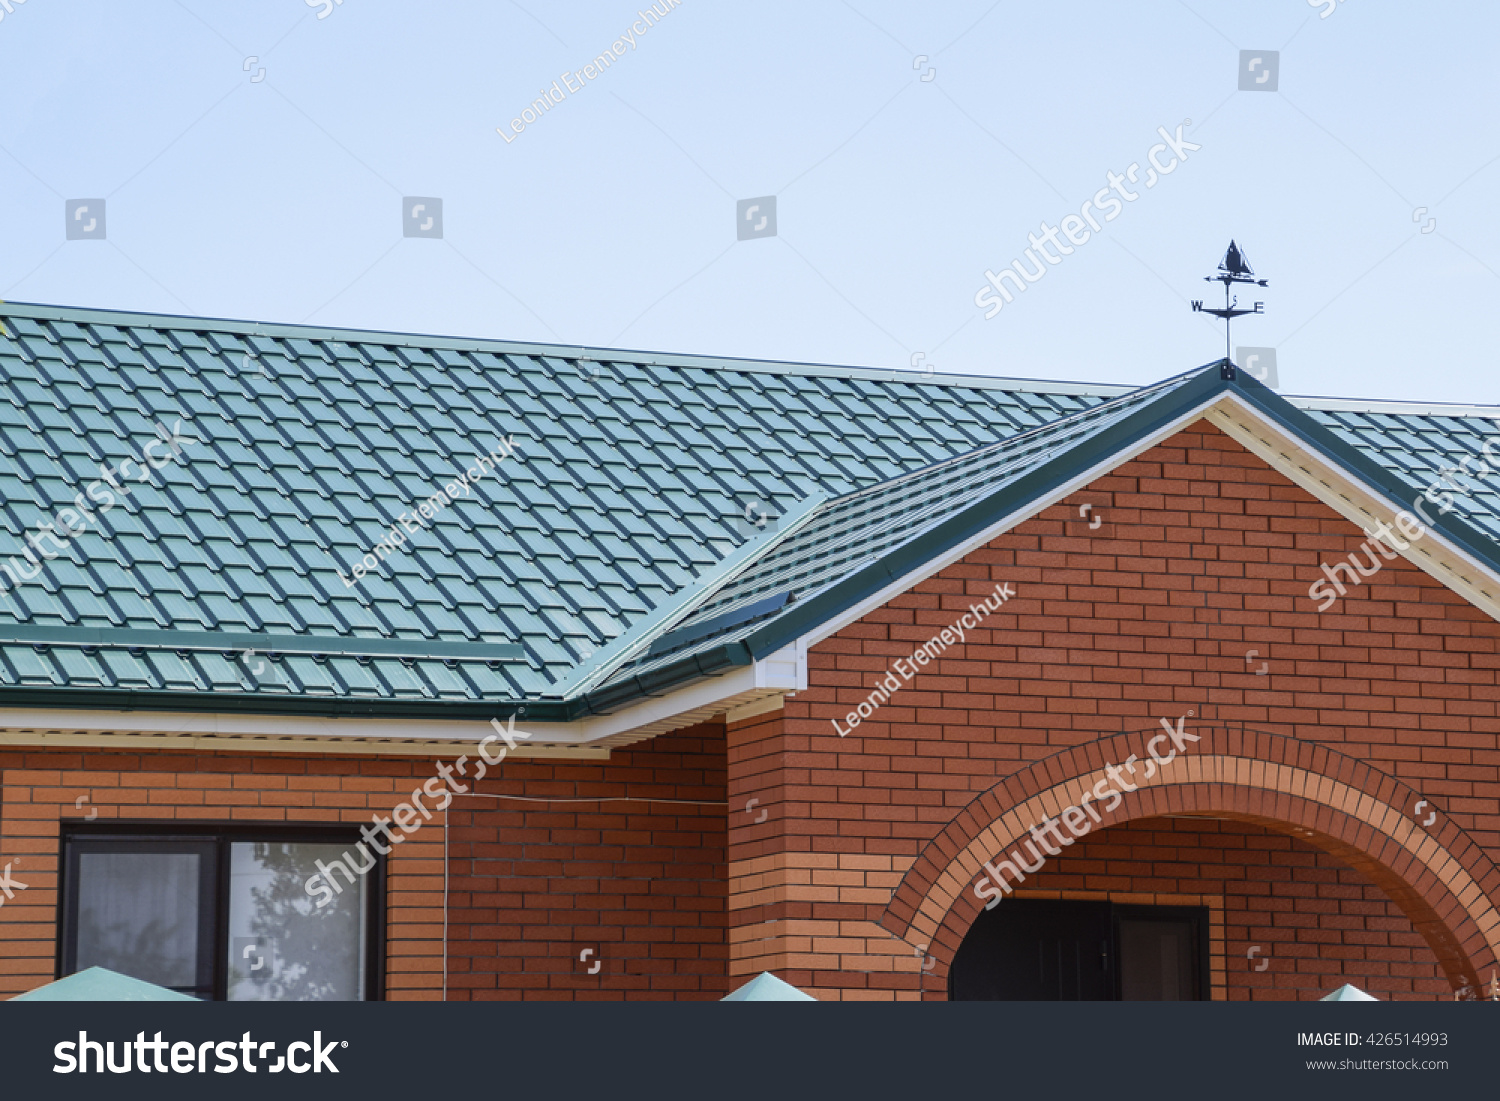 Facade brick building green roof made stock photo for Modern roofing materials